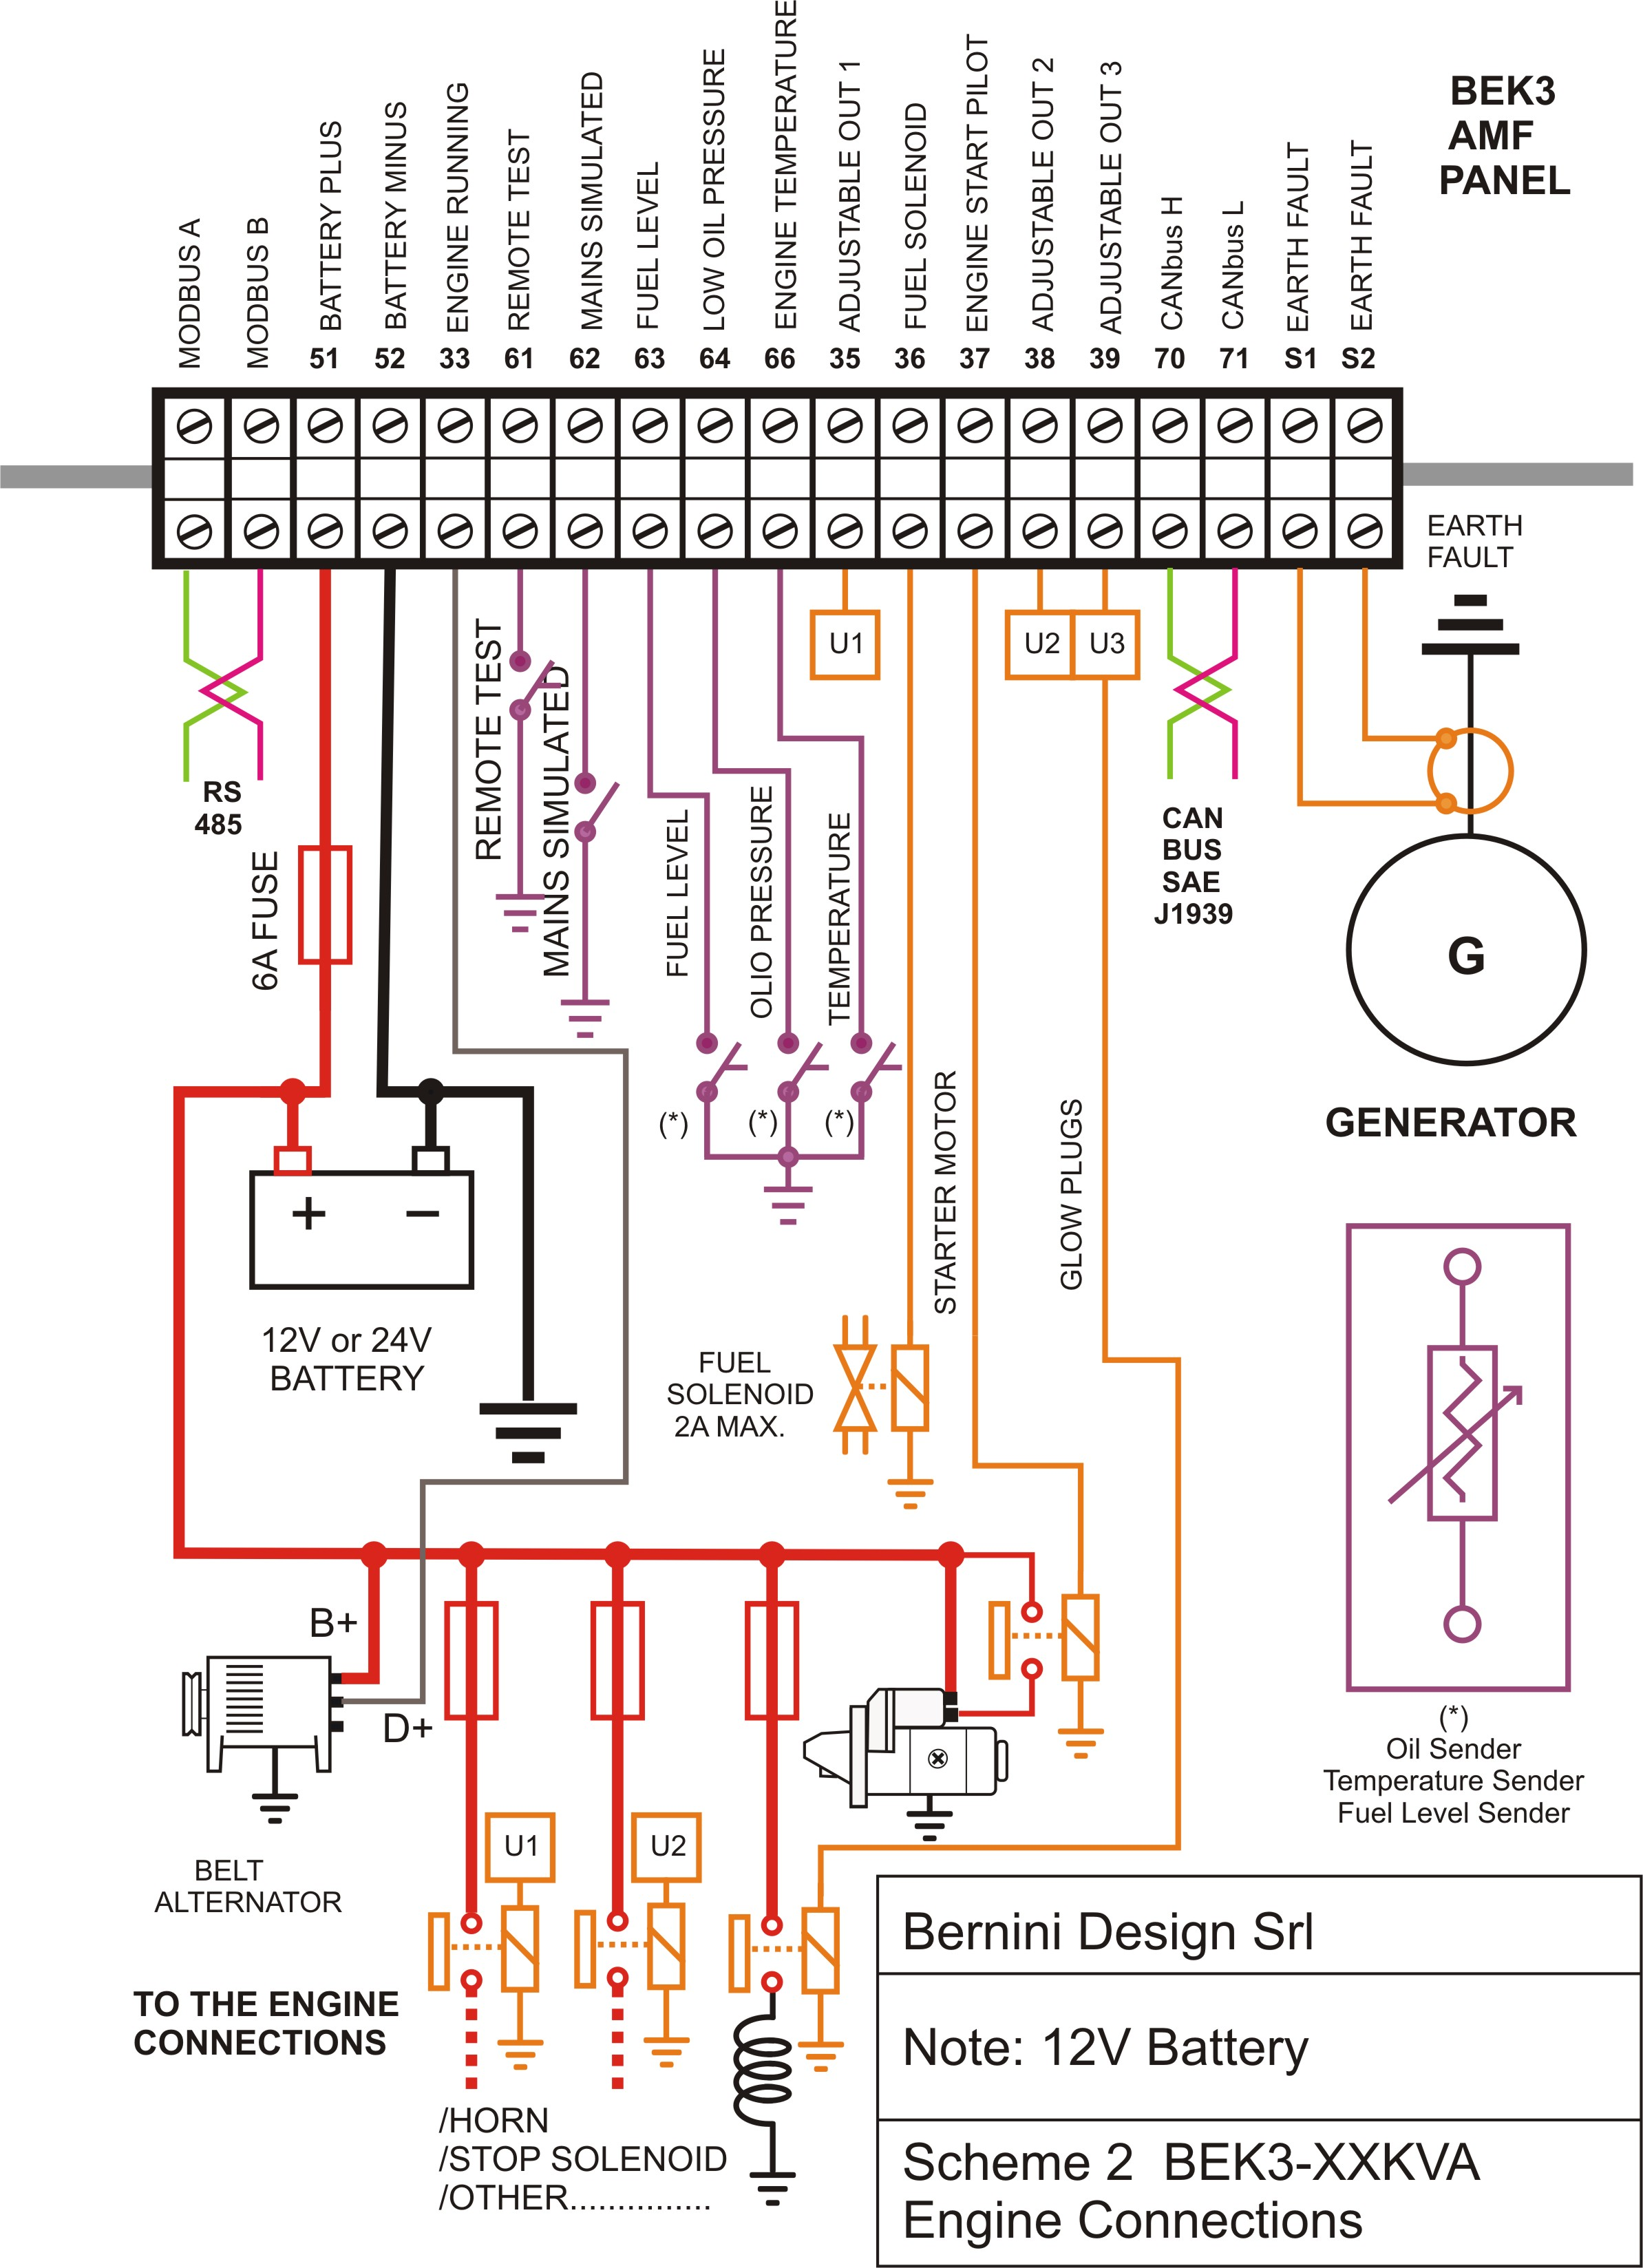 Diesel Generator Control Panel Wiring Diagram Engine Connections wiring diagrams maker readingrat net wiring diagram maker at readyjetset.co